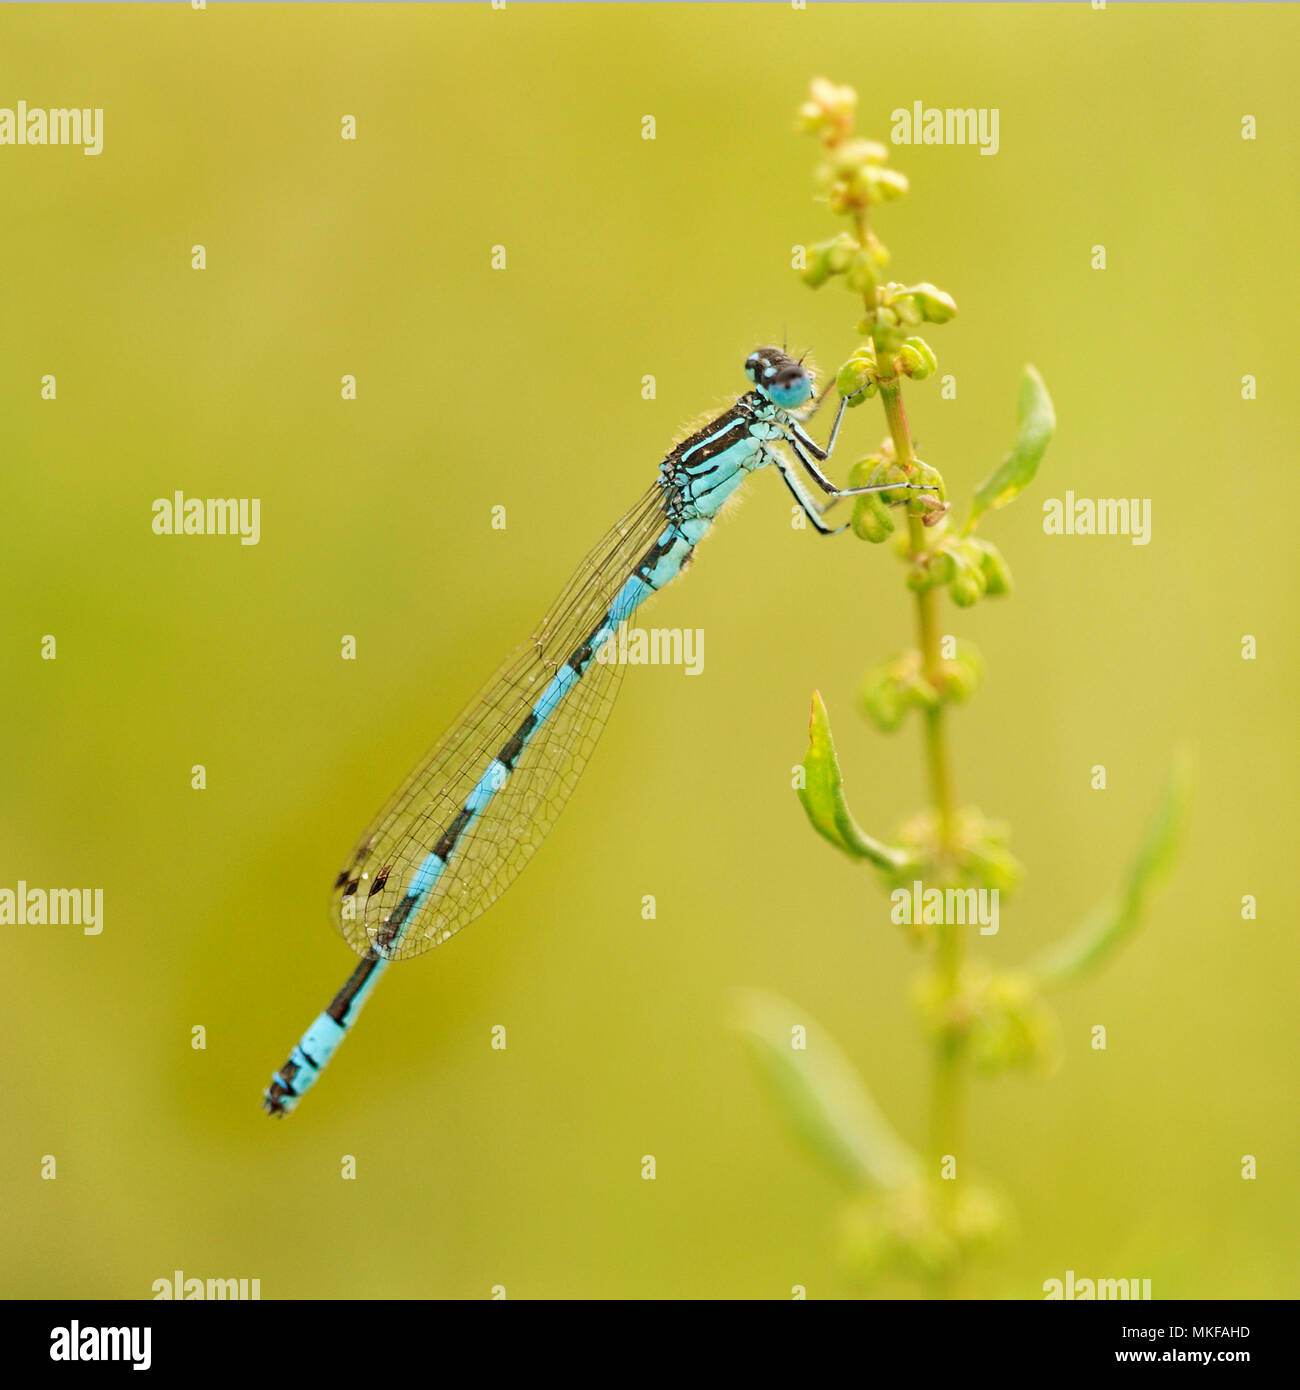 Southern Damselfly (Coenagrion mercuriale) on a flowering stalk in a humid area of the bocage bourbonnais, Auvergne, France - Stock Image